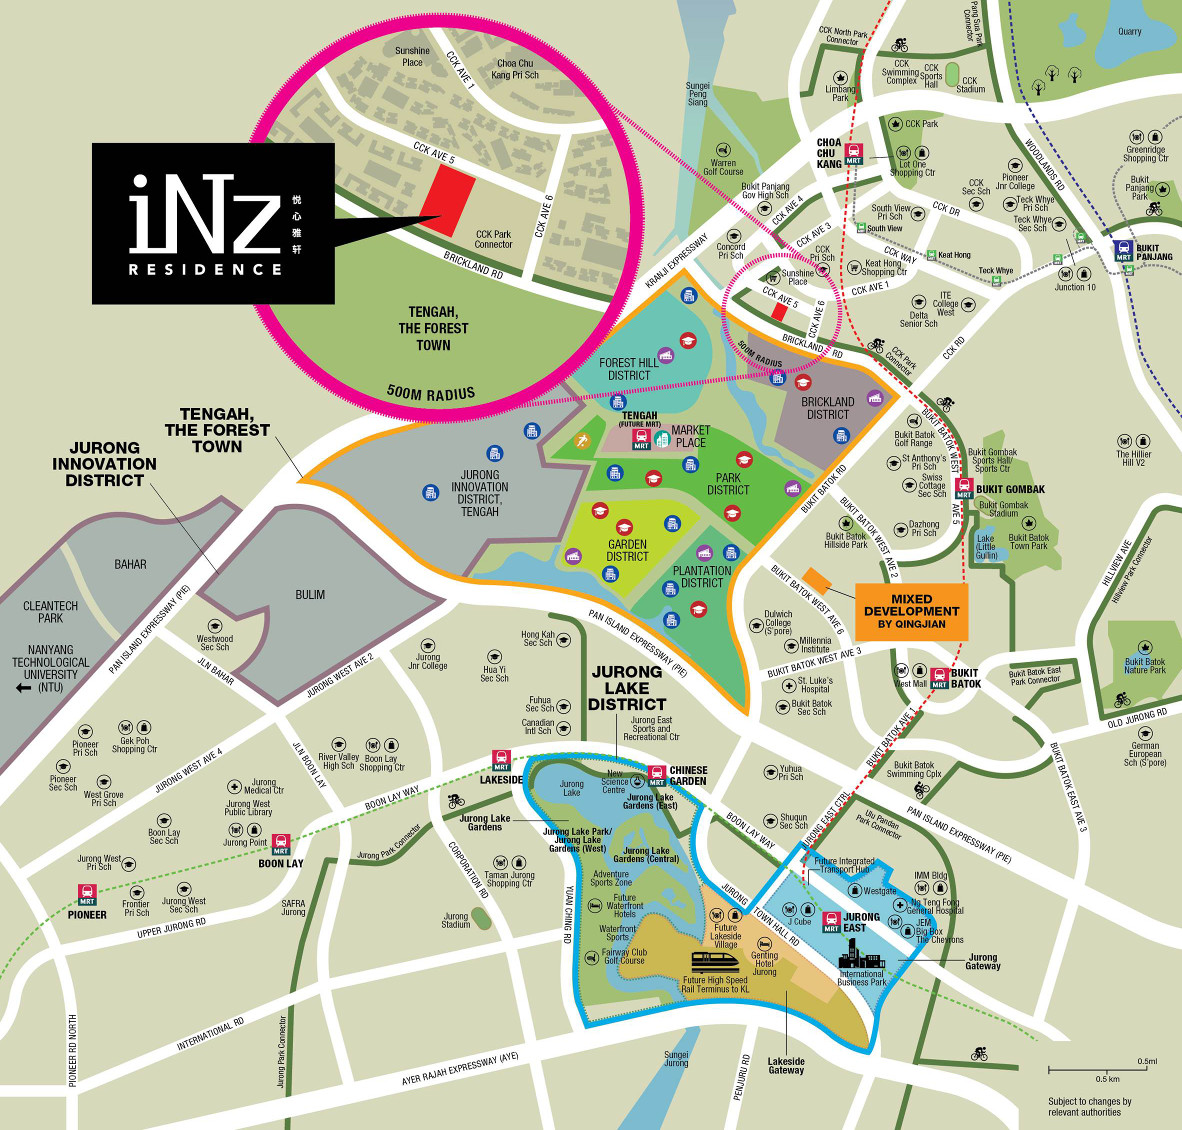 iNz Residence EC Location Plan and Surrounding Growth Districts